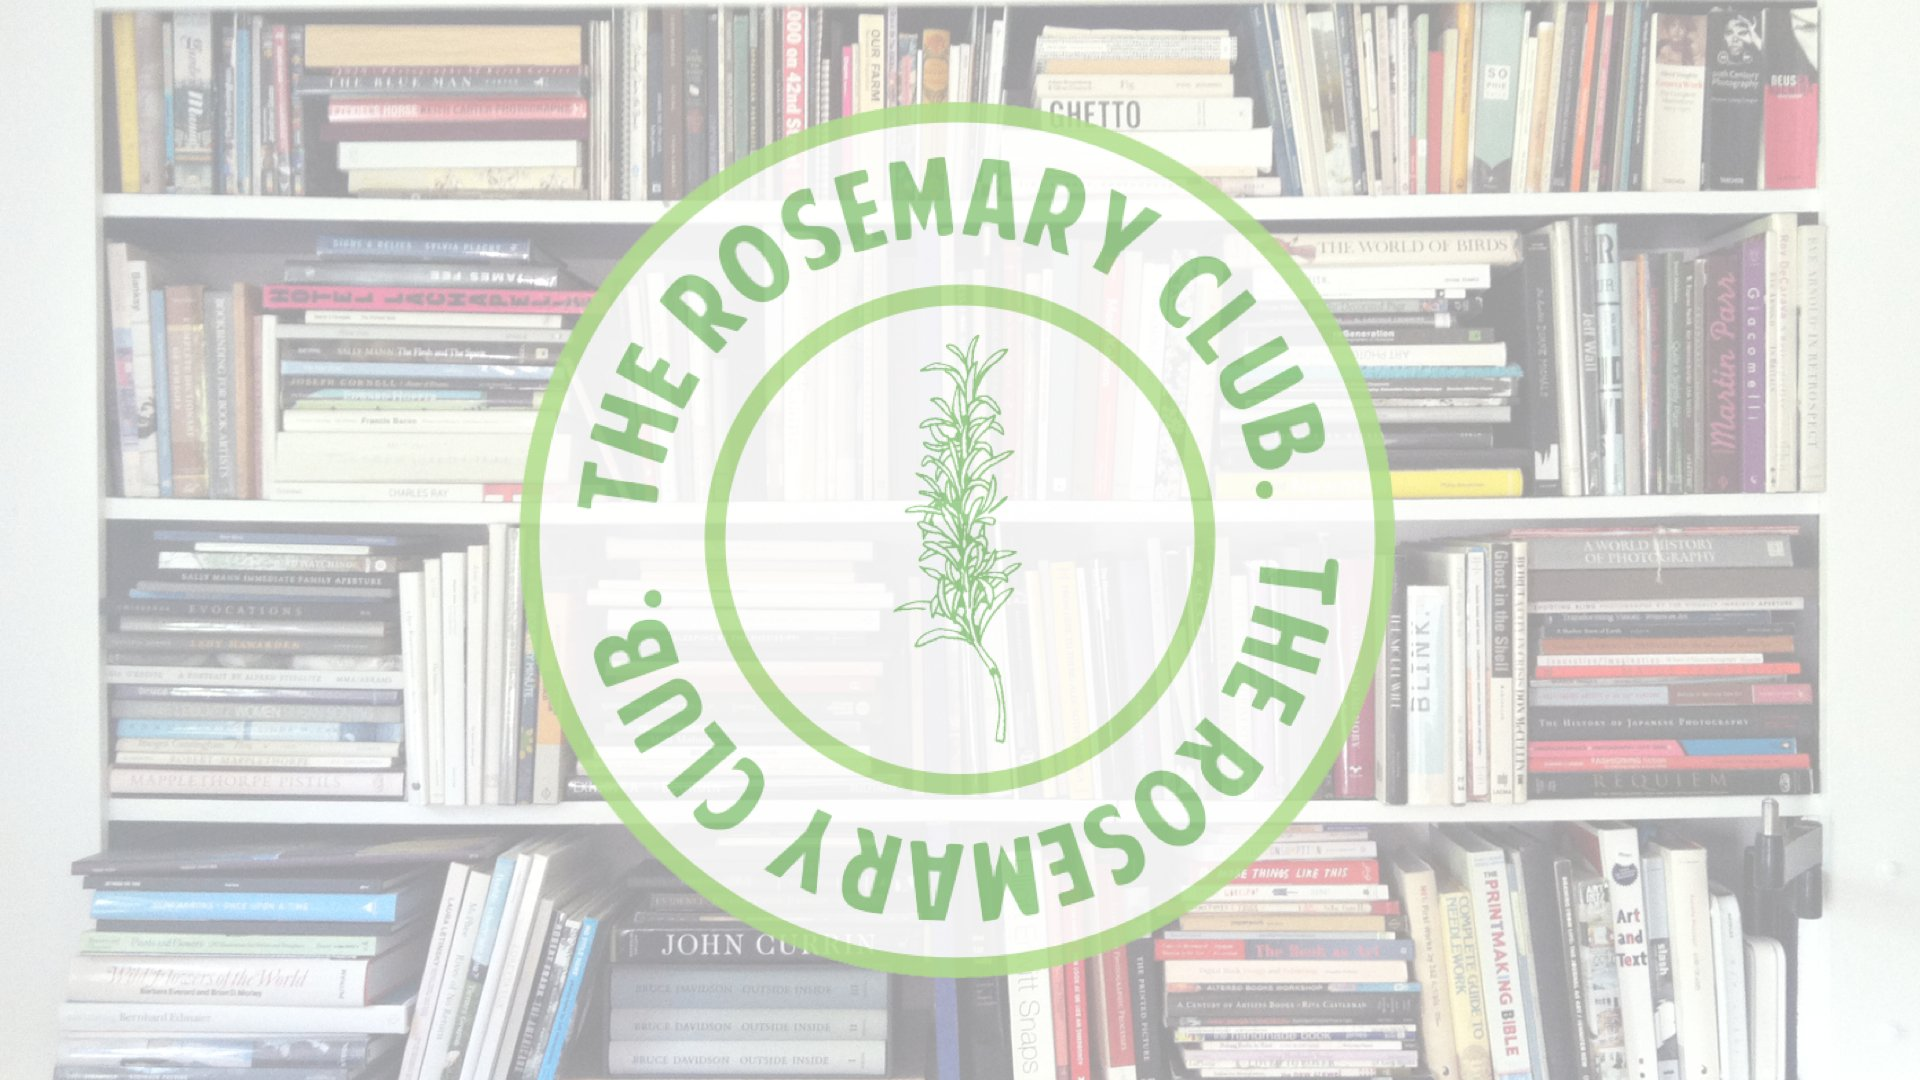 Introducing The Rosemary Club